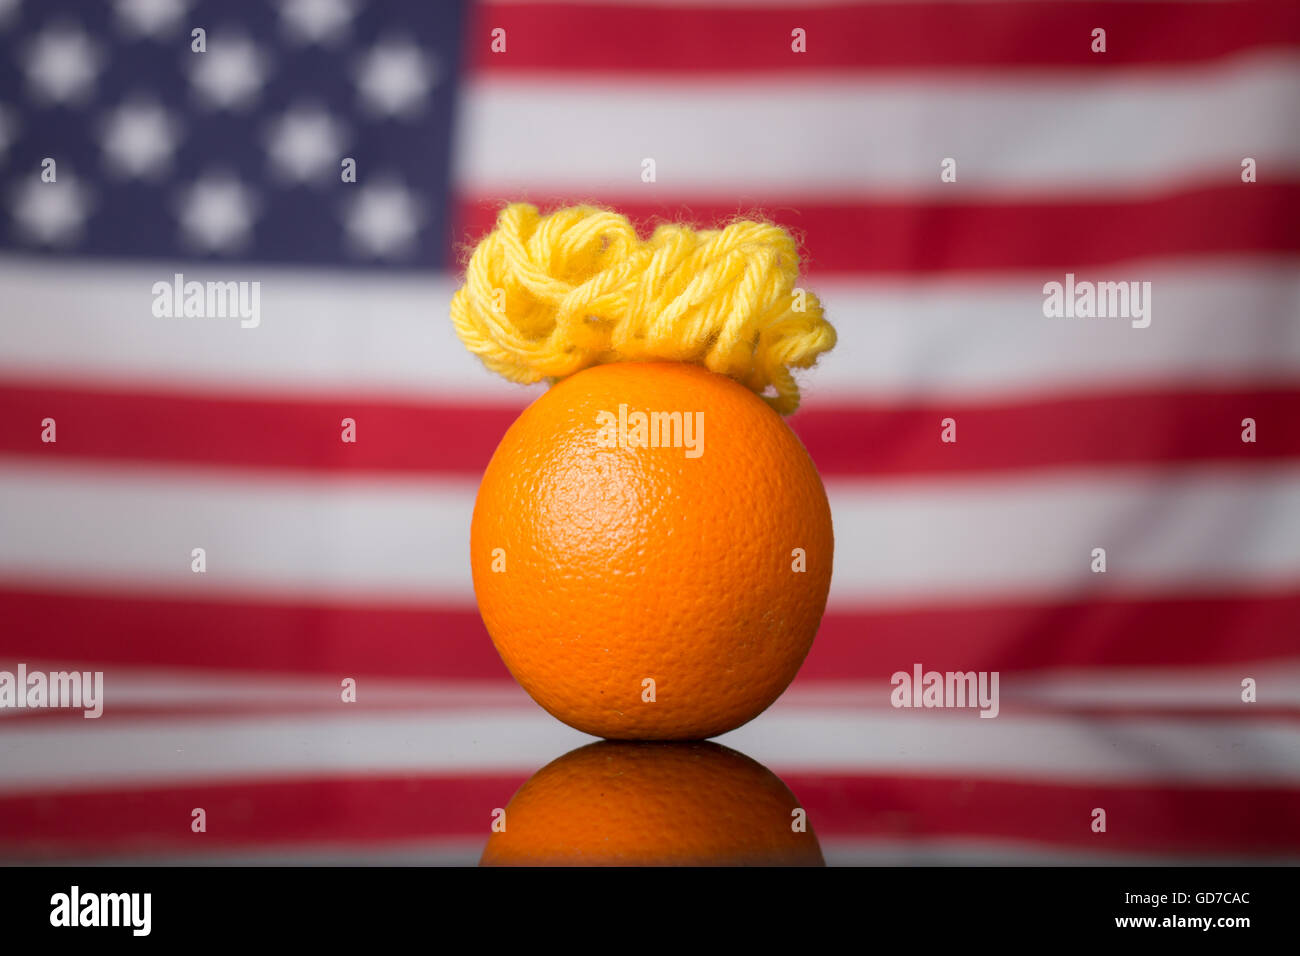 A satirical photo of an Orange made to look like US presidential candidate Donald Trump. - Stock Image